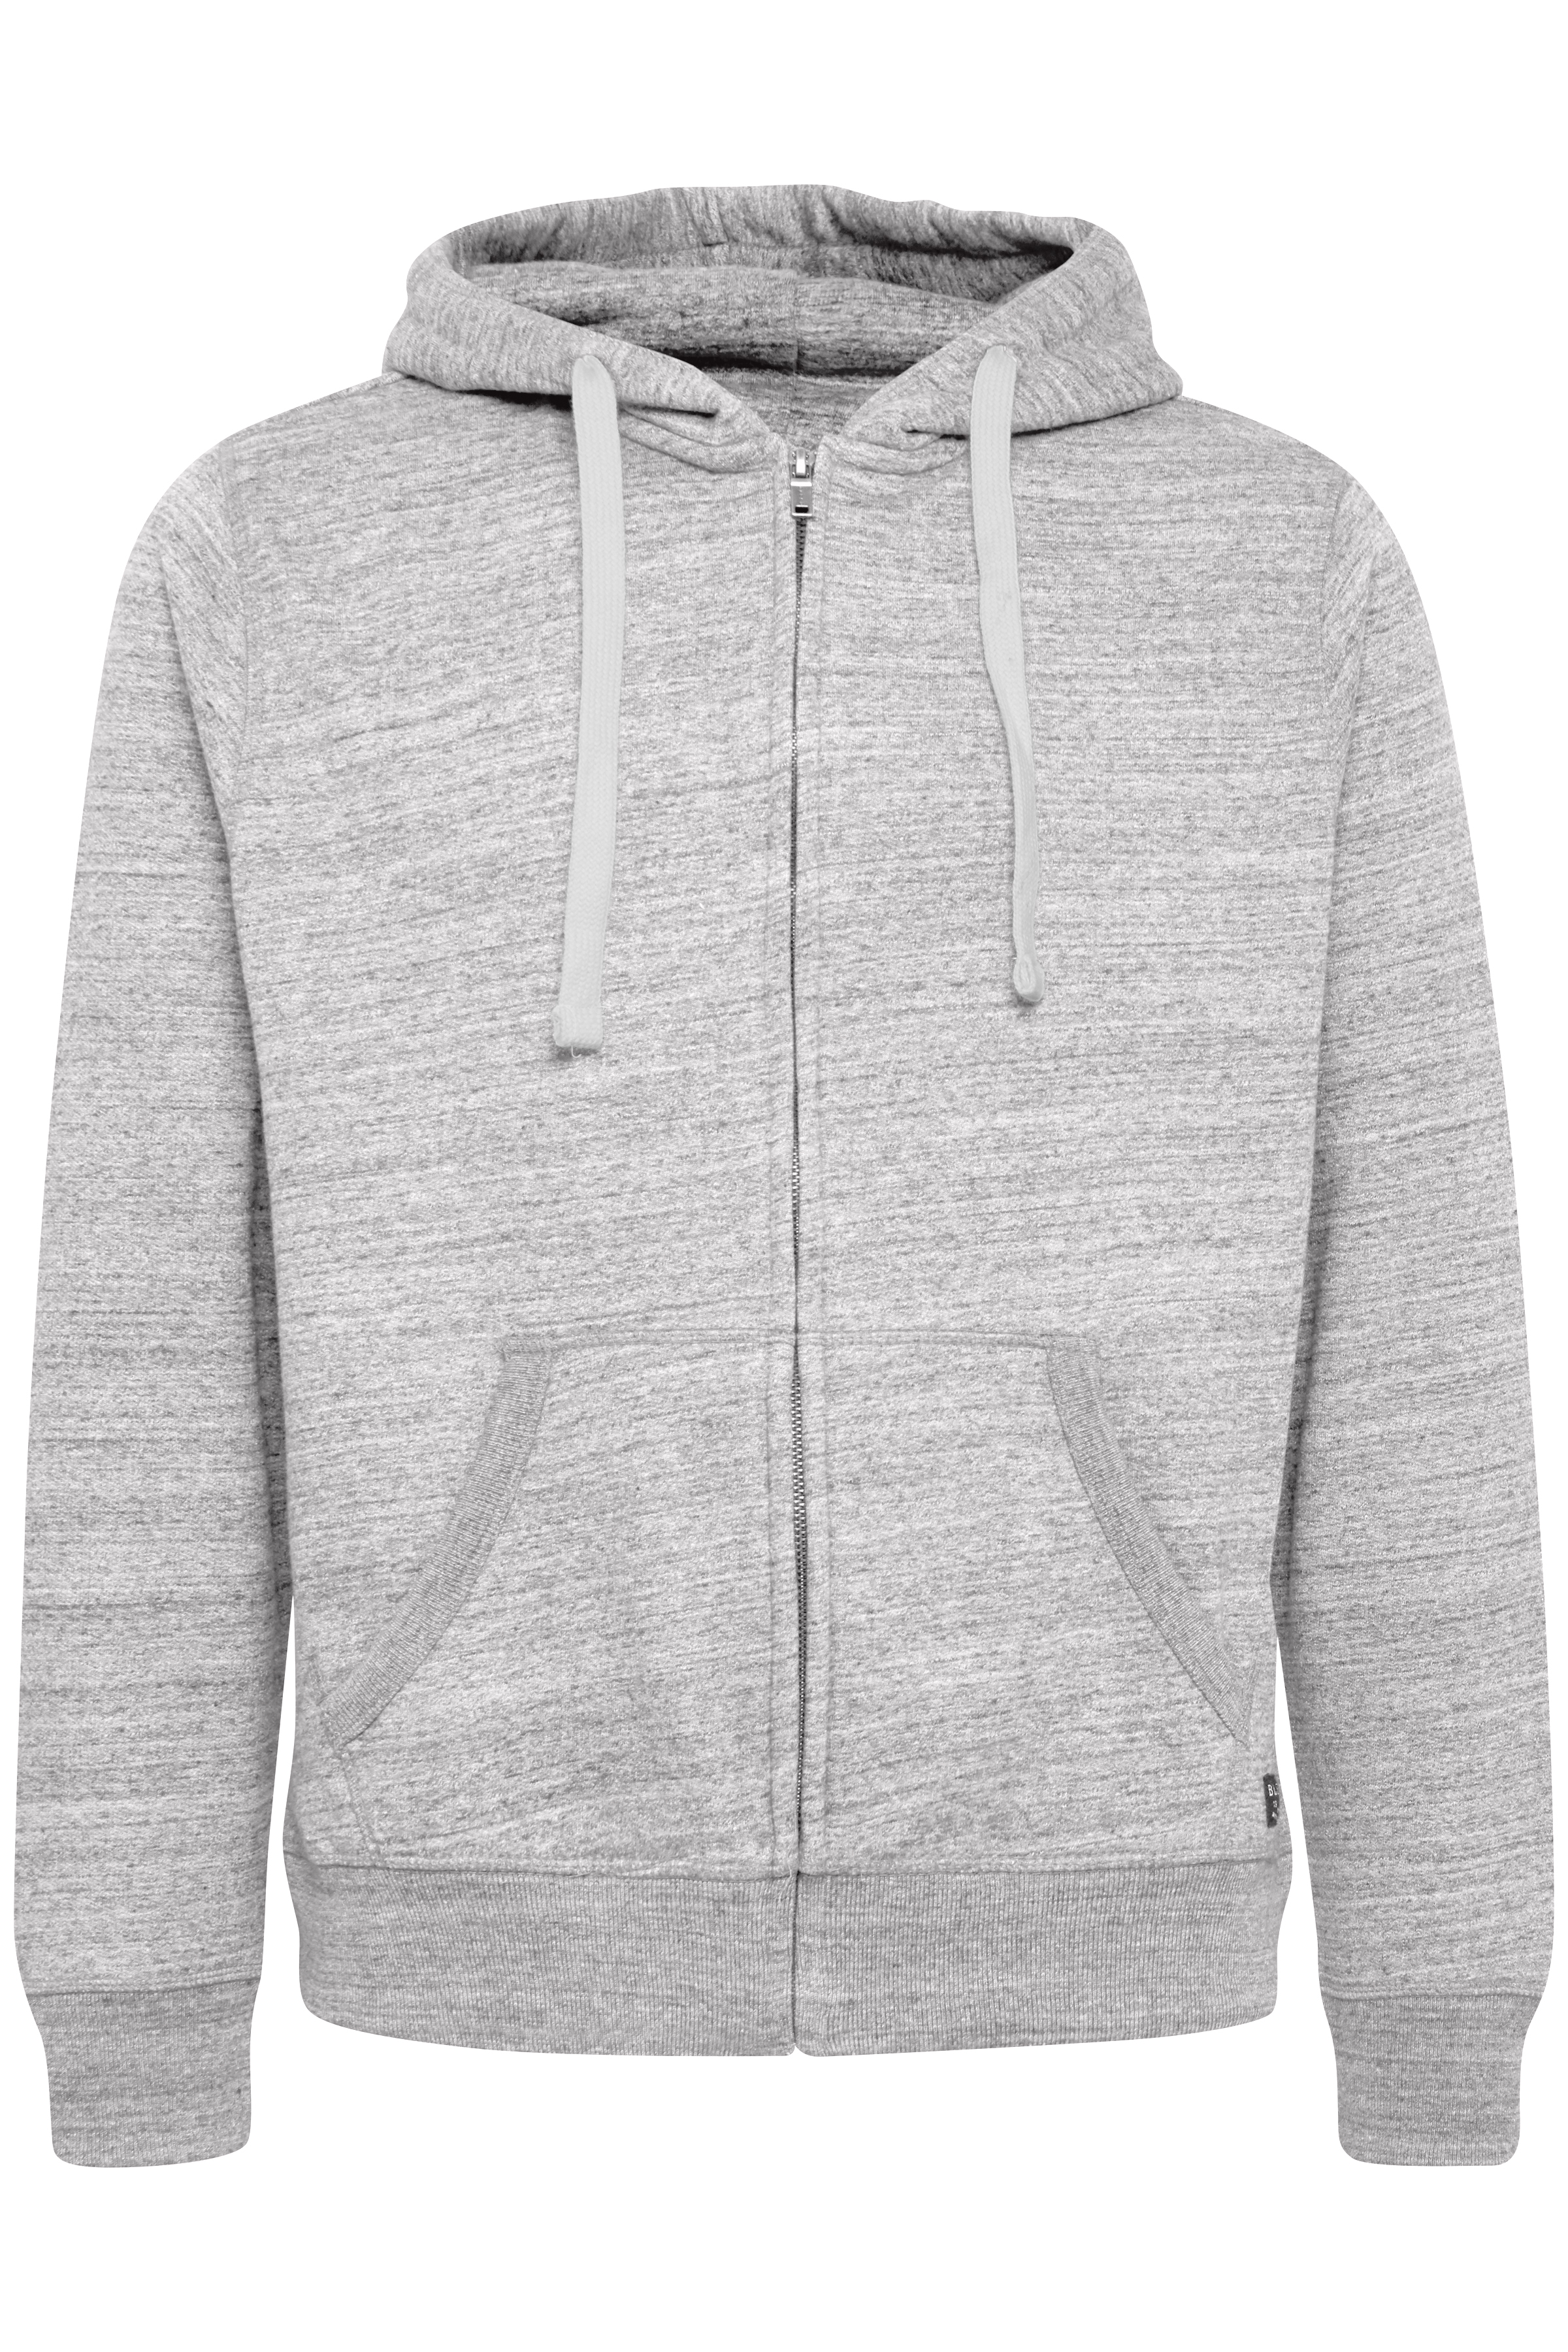 Blend He Herre Smart sweatshirt  - Stone mix